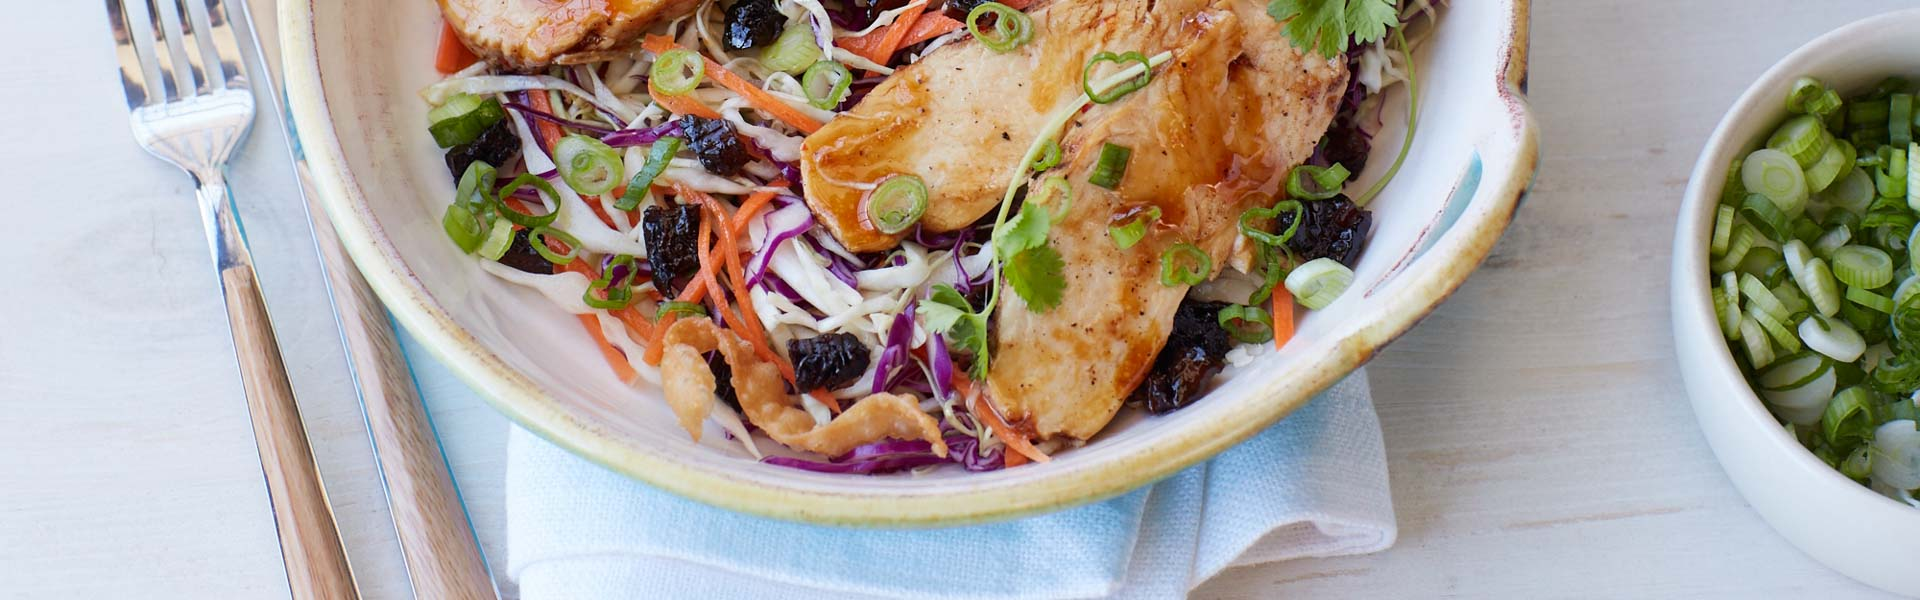 <p>Ginger, soy sauce, diced prunes, and five-spice seasoning come together seamlessly for an update on a classic Chinese chicken salad.</p>